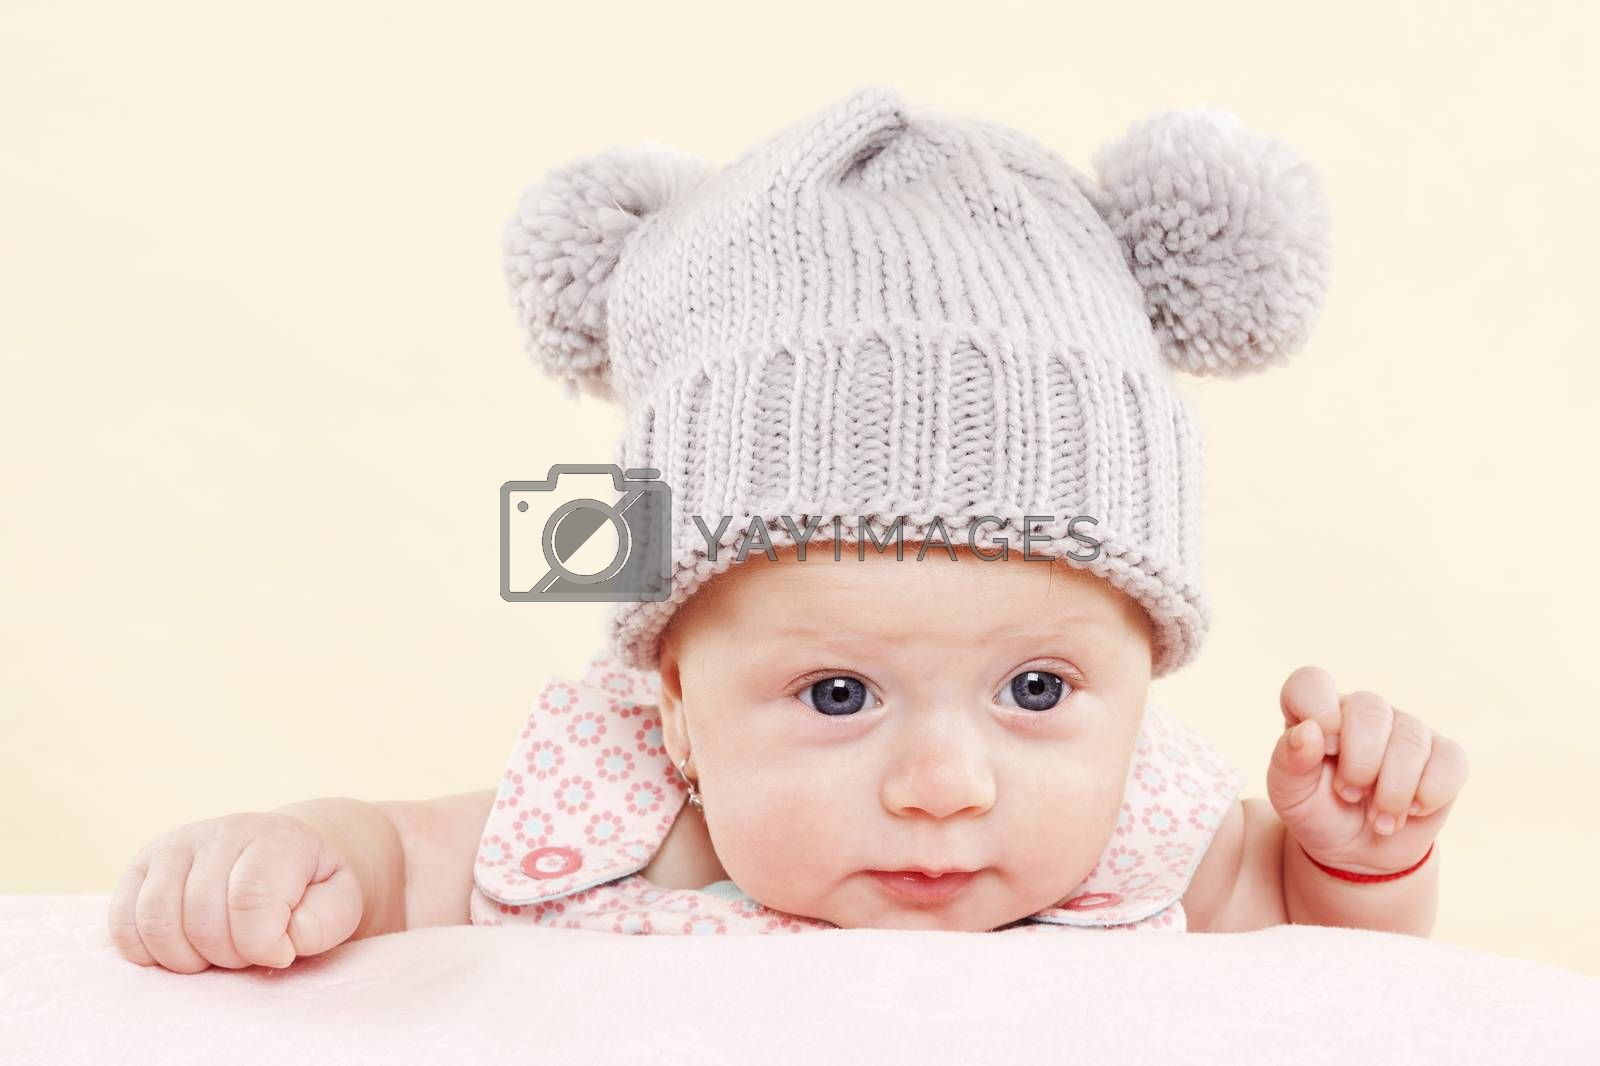 Cute baby girl with grey hat and blue eyes looking into the camera. Newborn baby concept.